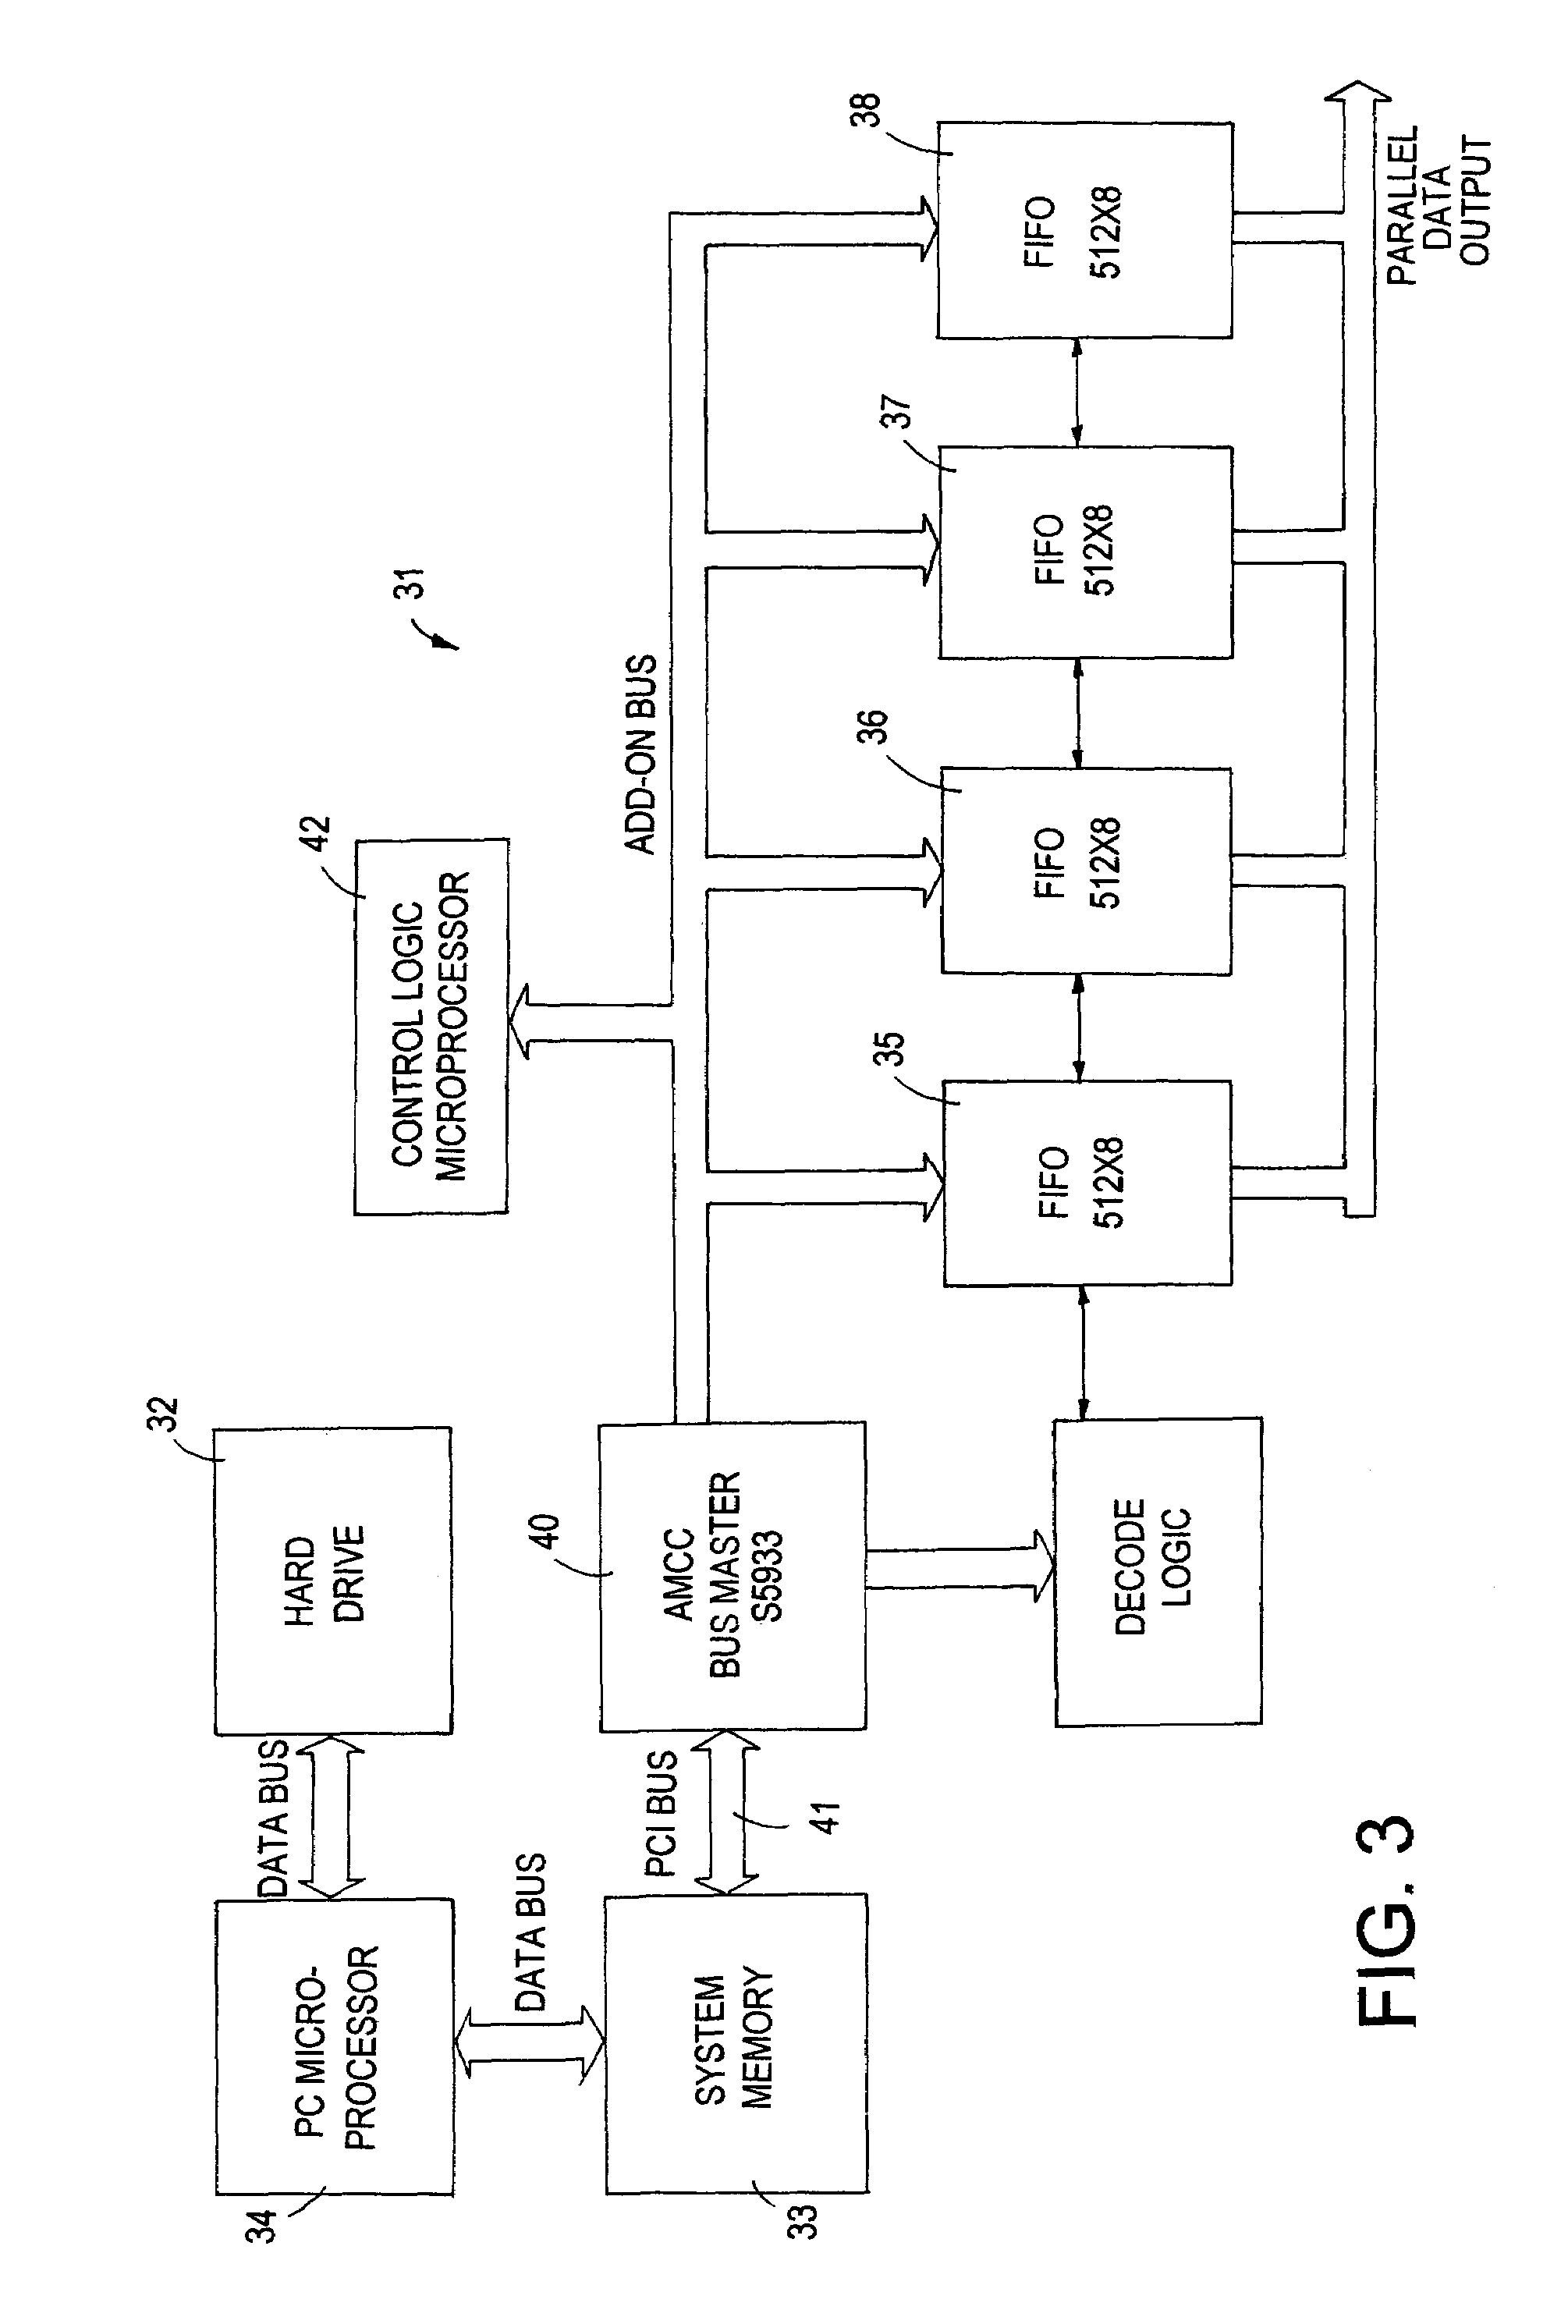 Brevet Us6978081 Continuous Looping Feature In Transmission Of Block Diagram Hdtv Patent Drawing